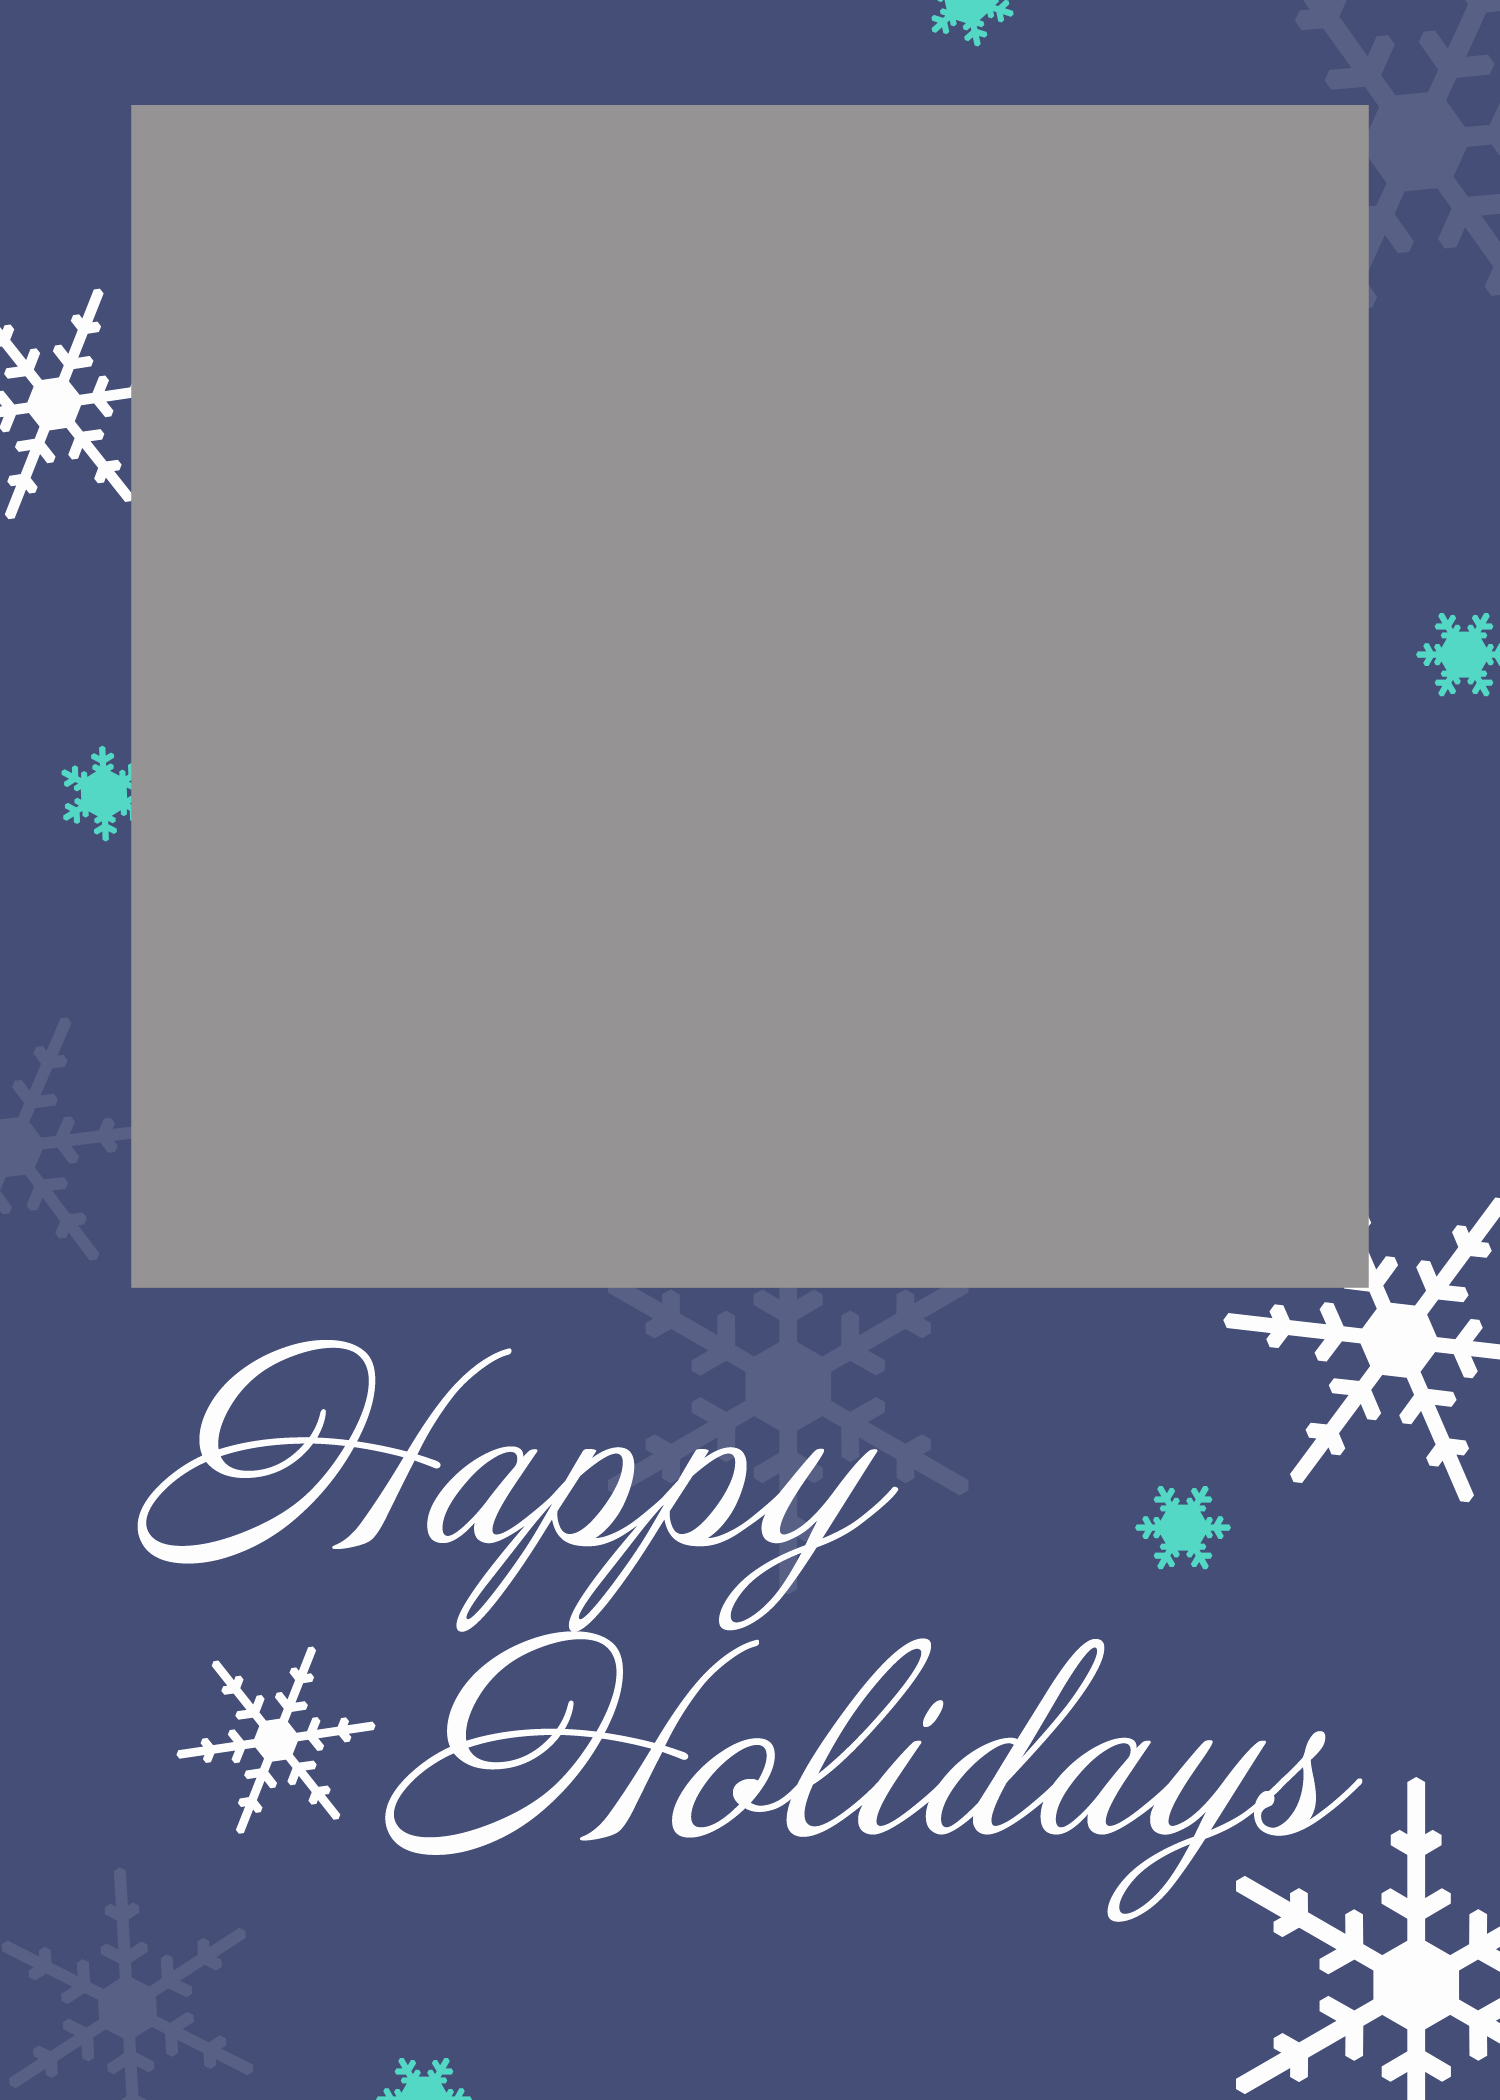 Free Christmas Photo Templates Fresh Free Printable Holiday Card Plus Pixlr Video